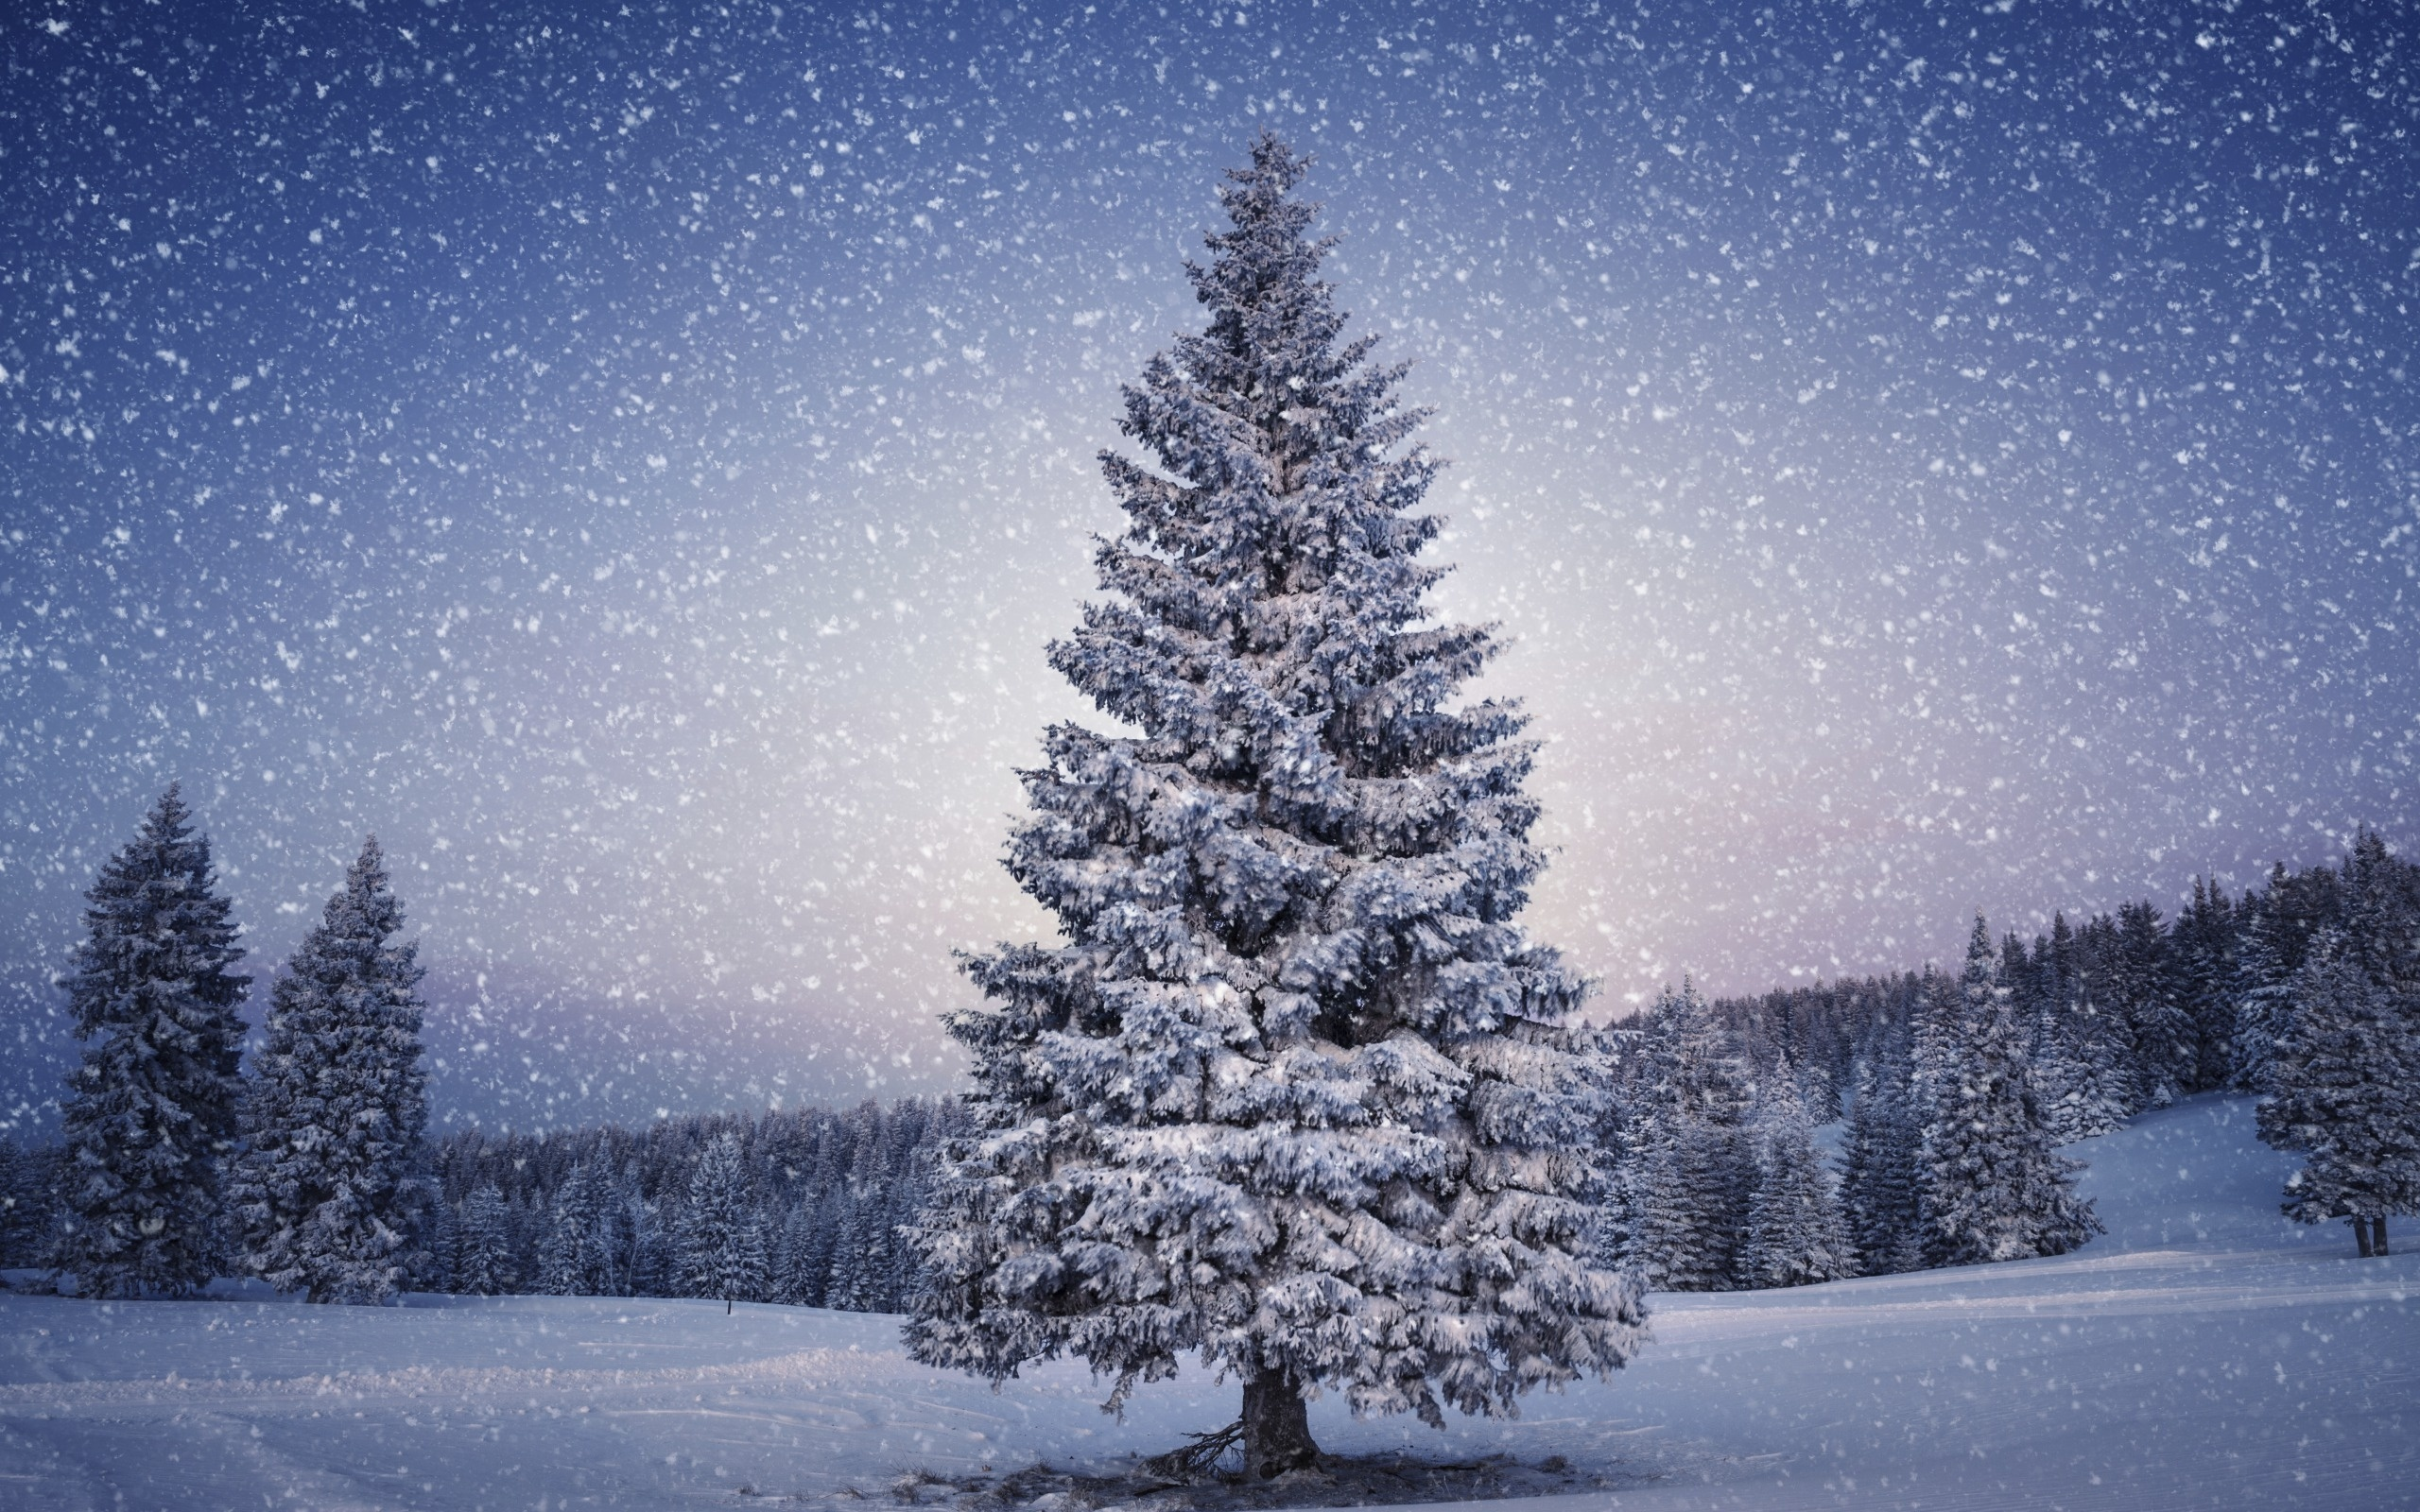 Snowy Christmas Tree HD Wallpaper 4268 HD Wallpaper 3D Desktop 2560x1600